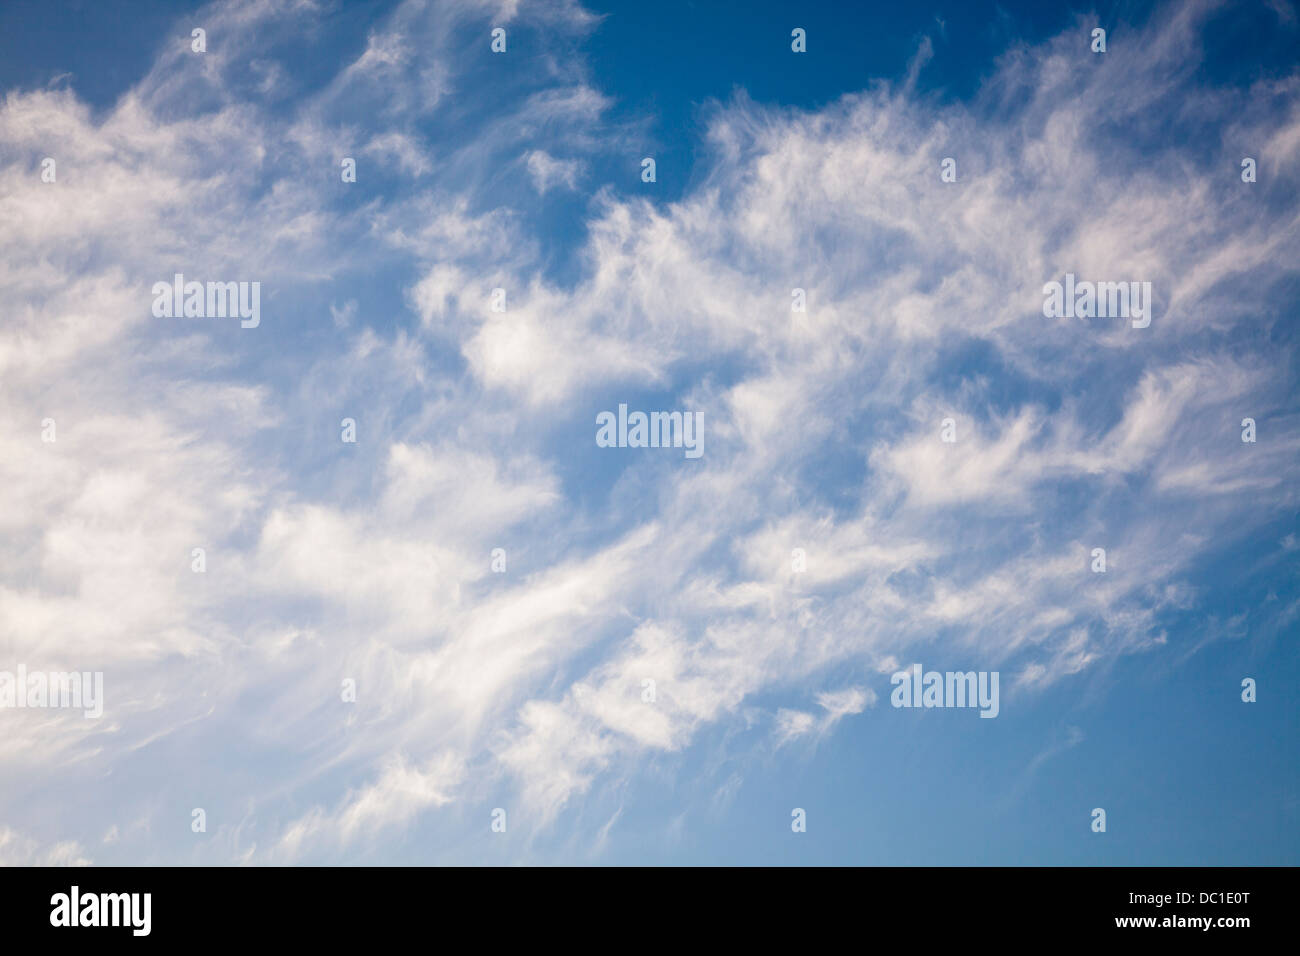 White cirrocumulus cloud in a bright blue sky on a summer's day. - Stock Image